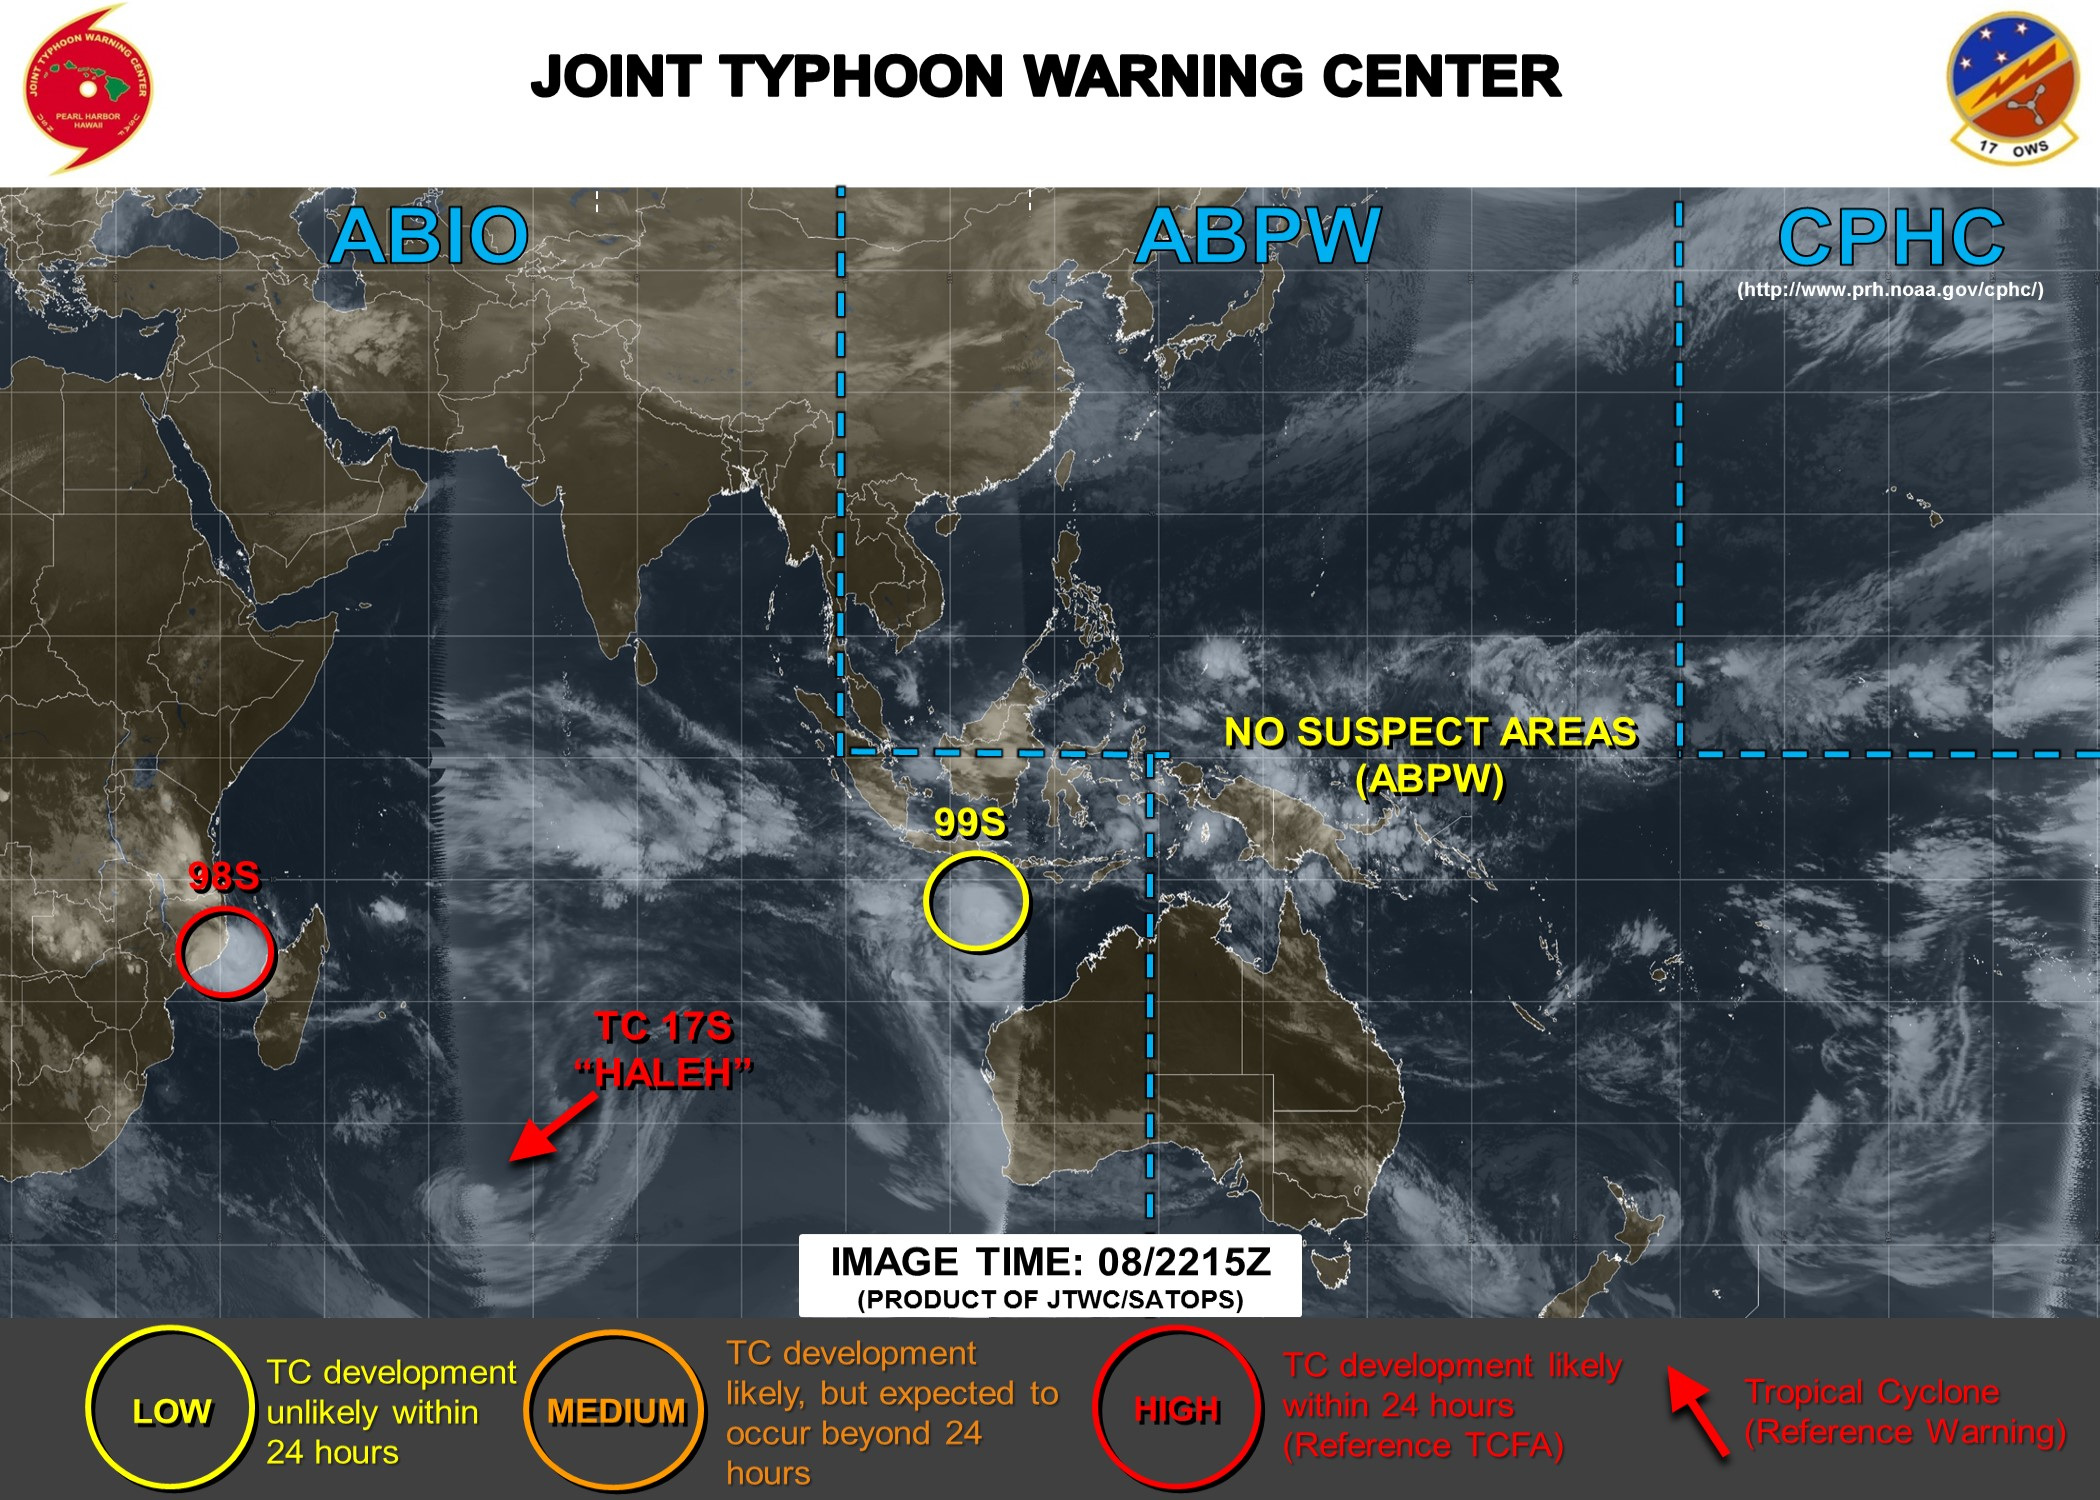 22UTC: 98S: Tropical Cyclone Formation Alert(TCFA) issued by the JTWC